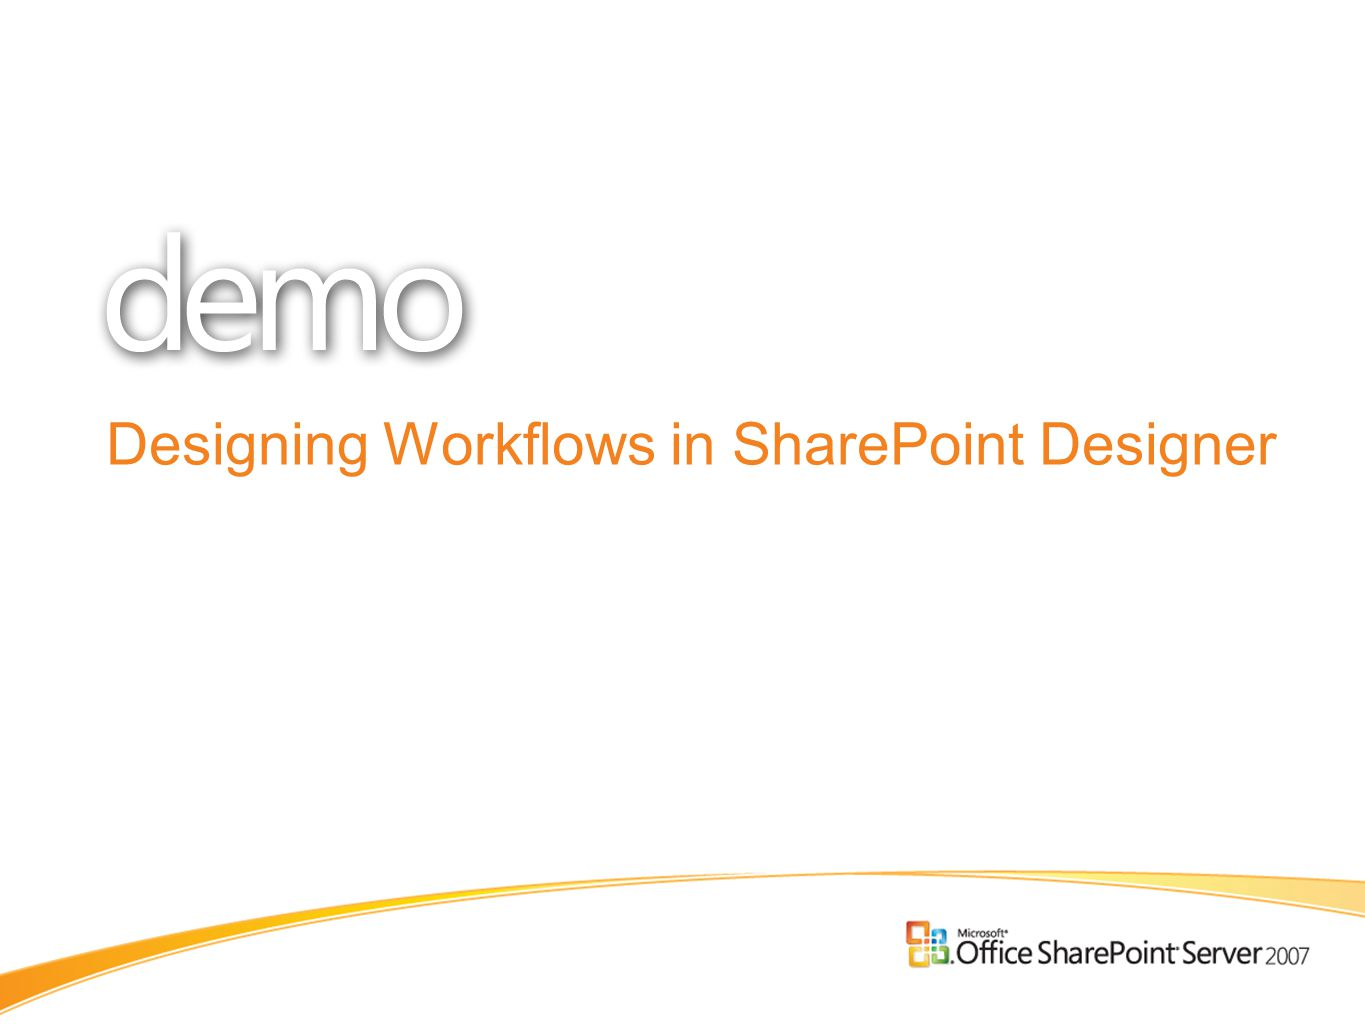 Designing Workflows in SharePoint Designer